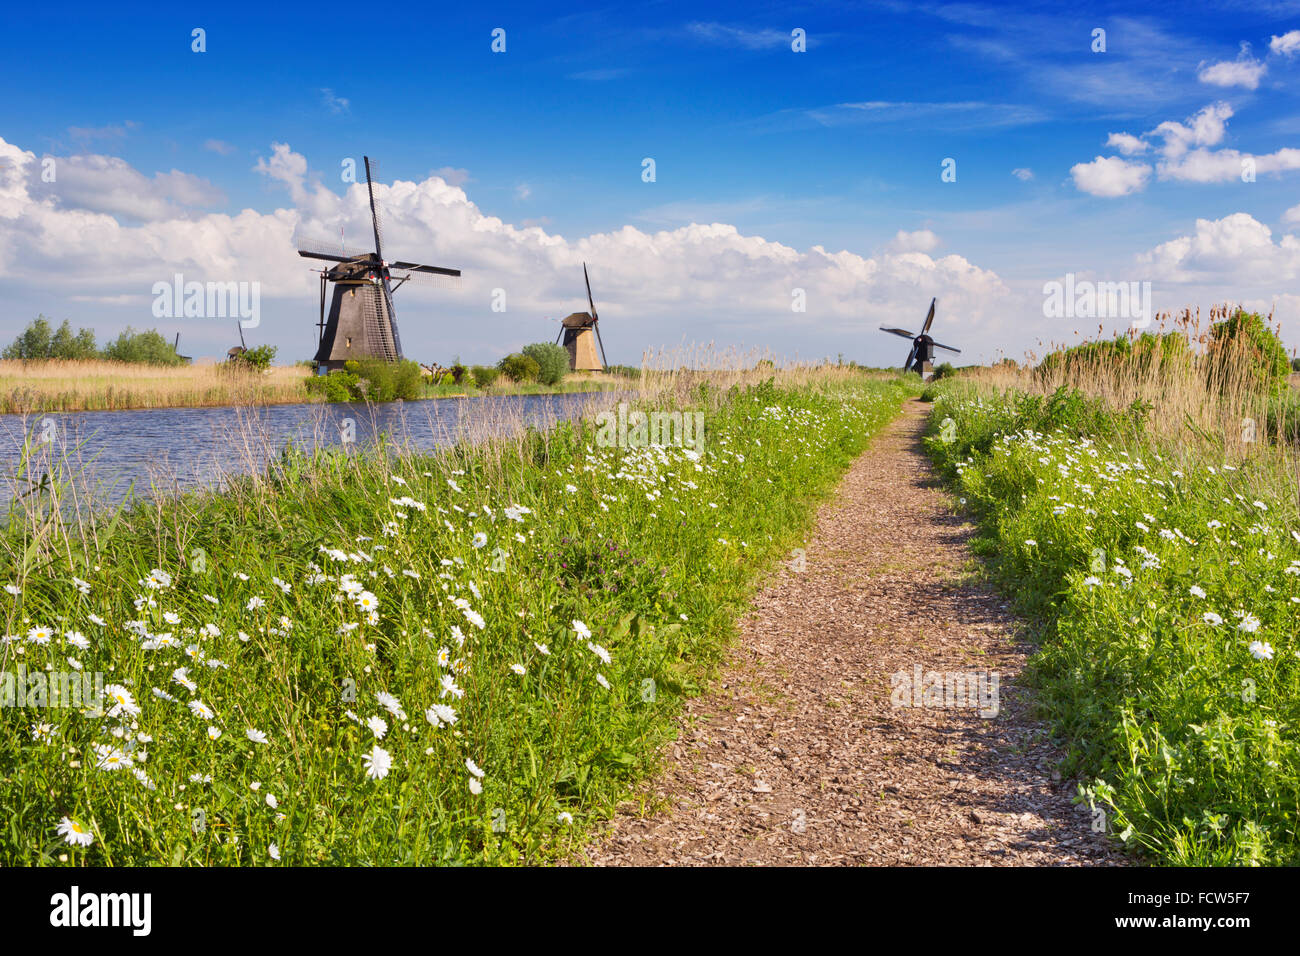 A path along traditional Dutch windmills on a bright and sunny day at the Kinderdijk in The Netherlands. Stock Photo